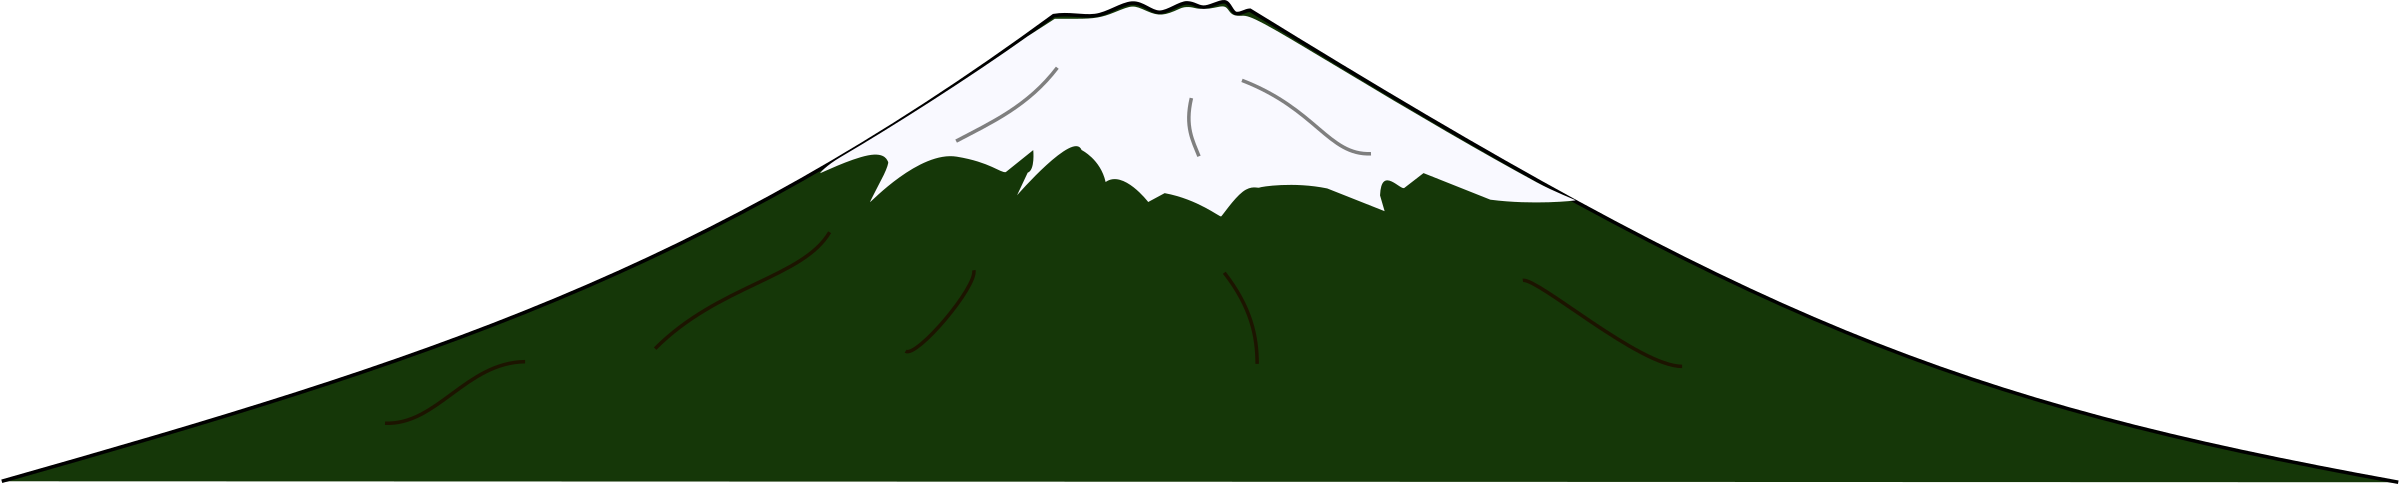 Icons png free and. Clipart mountains volcanic mountain